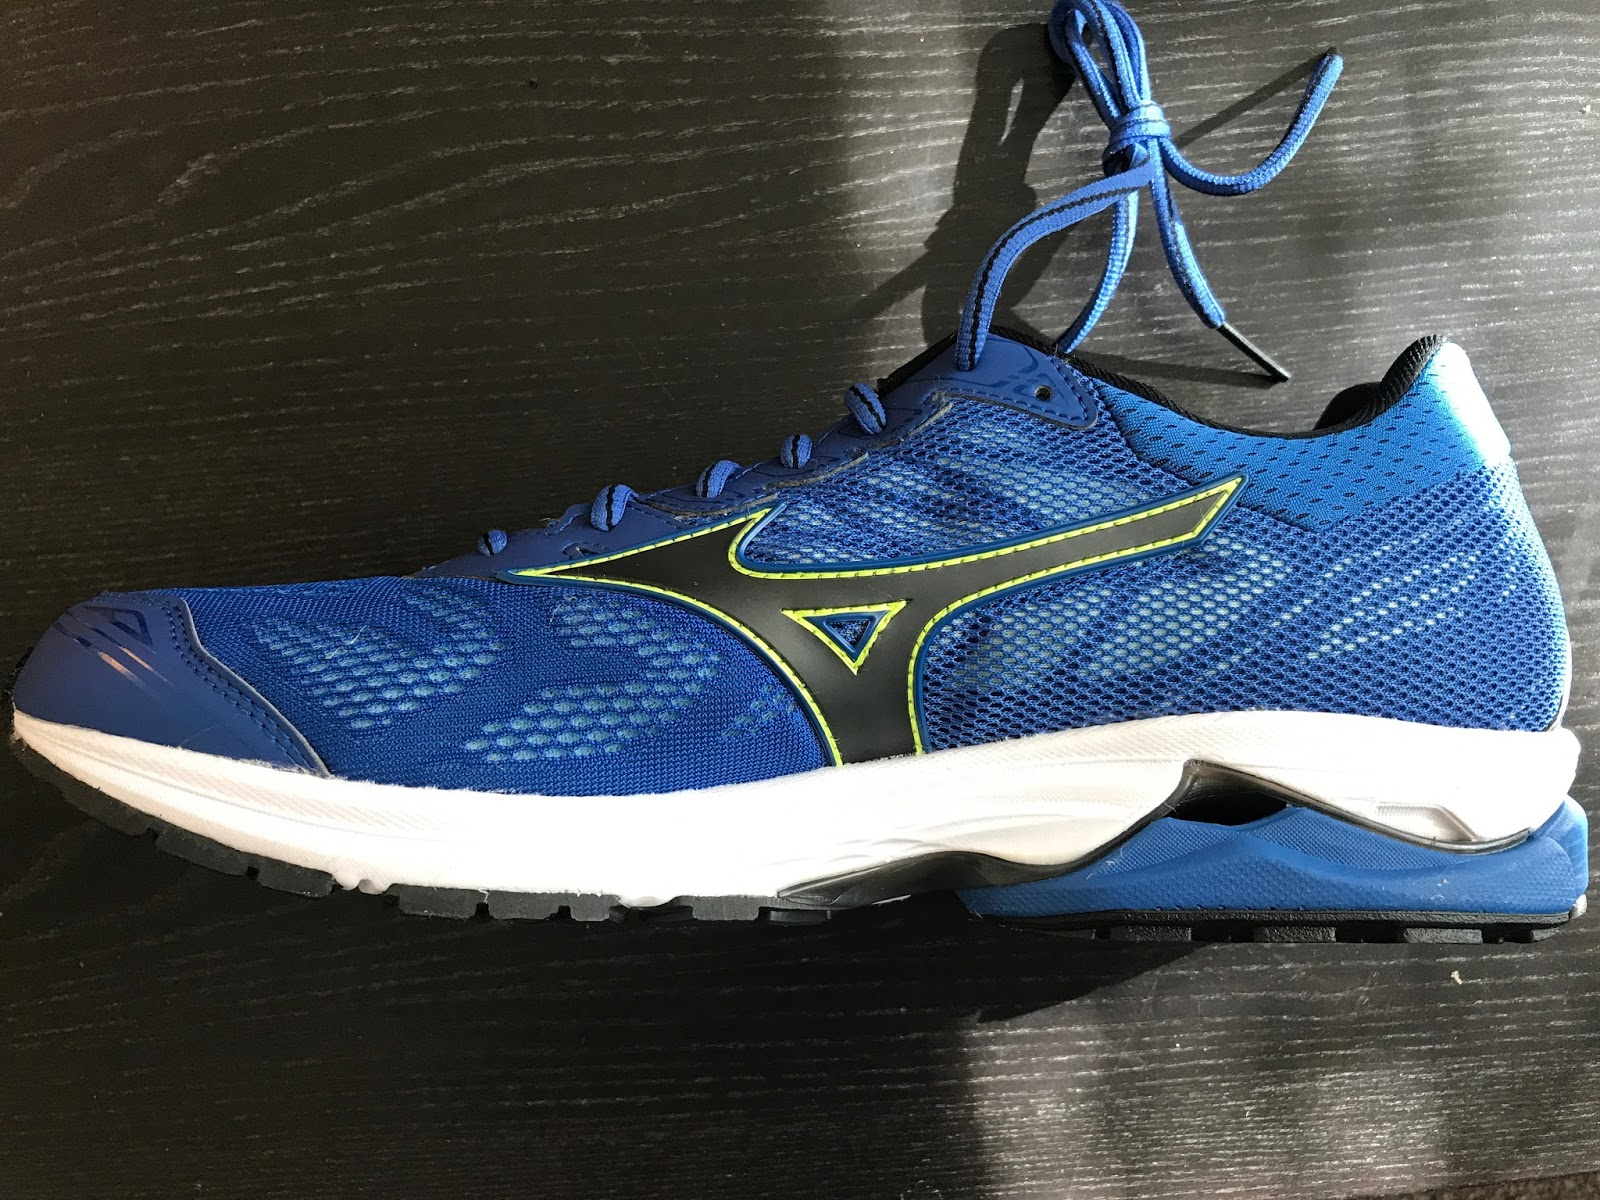 9e360dfc7fe5 Road Trail Run: Mizuno Wave Rider 21 Review: Strongly Divided Opinions